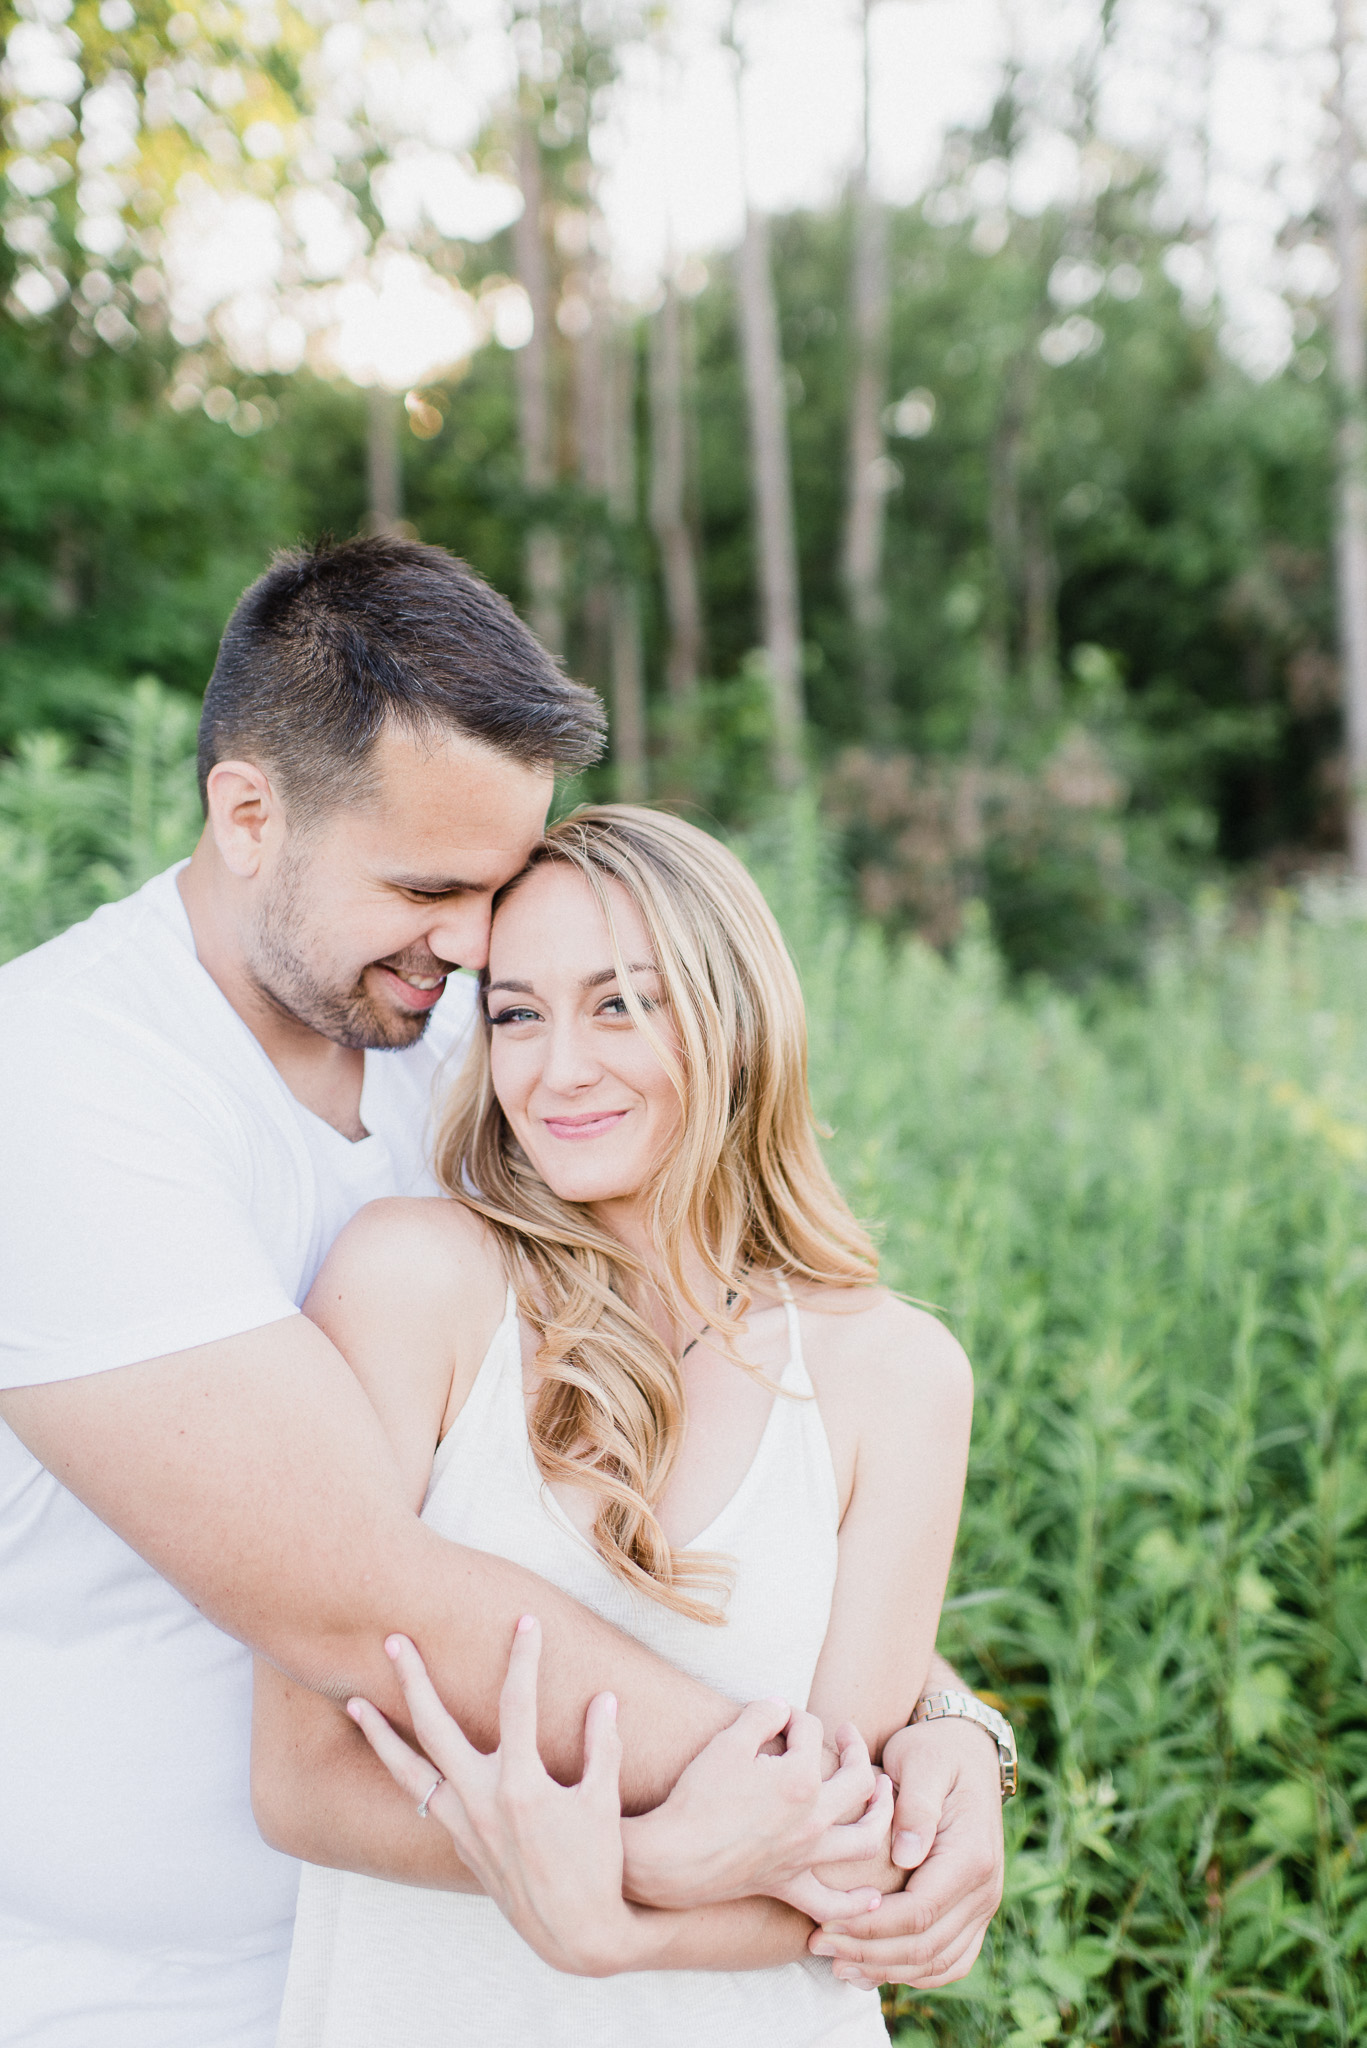 Toronto area lavender field engagement photos by Jenn Kavanagh Photography